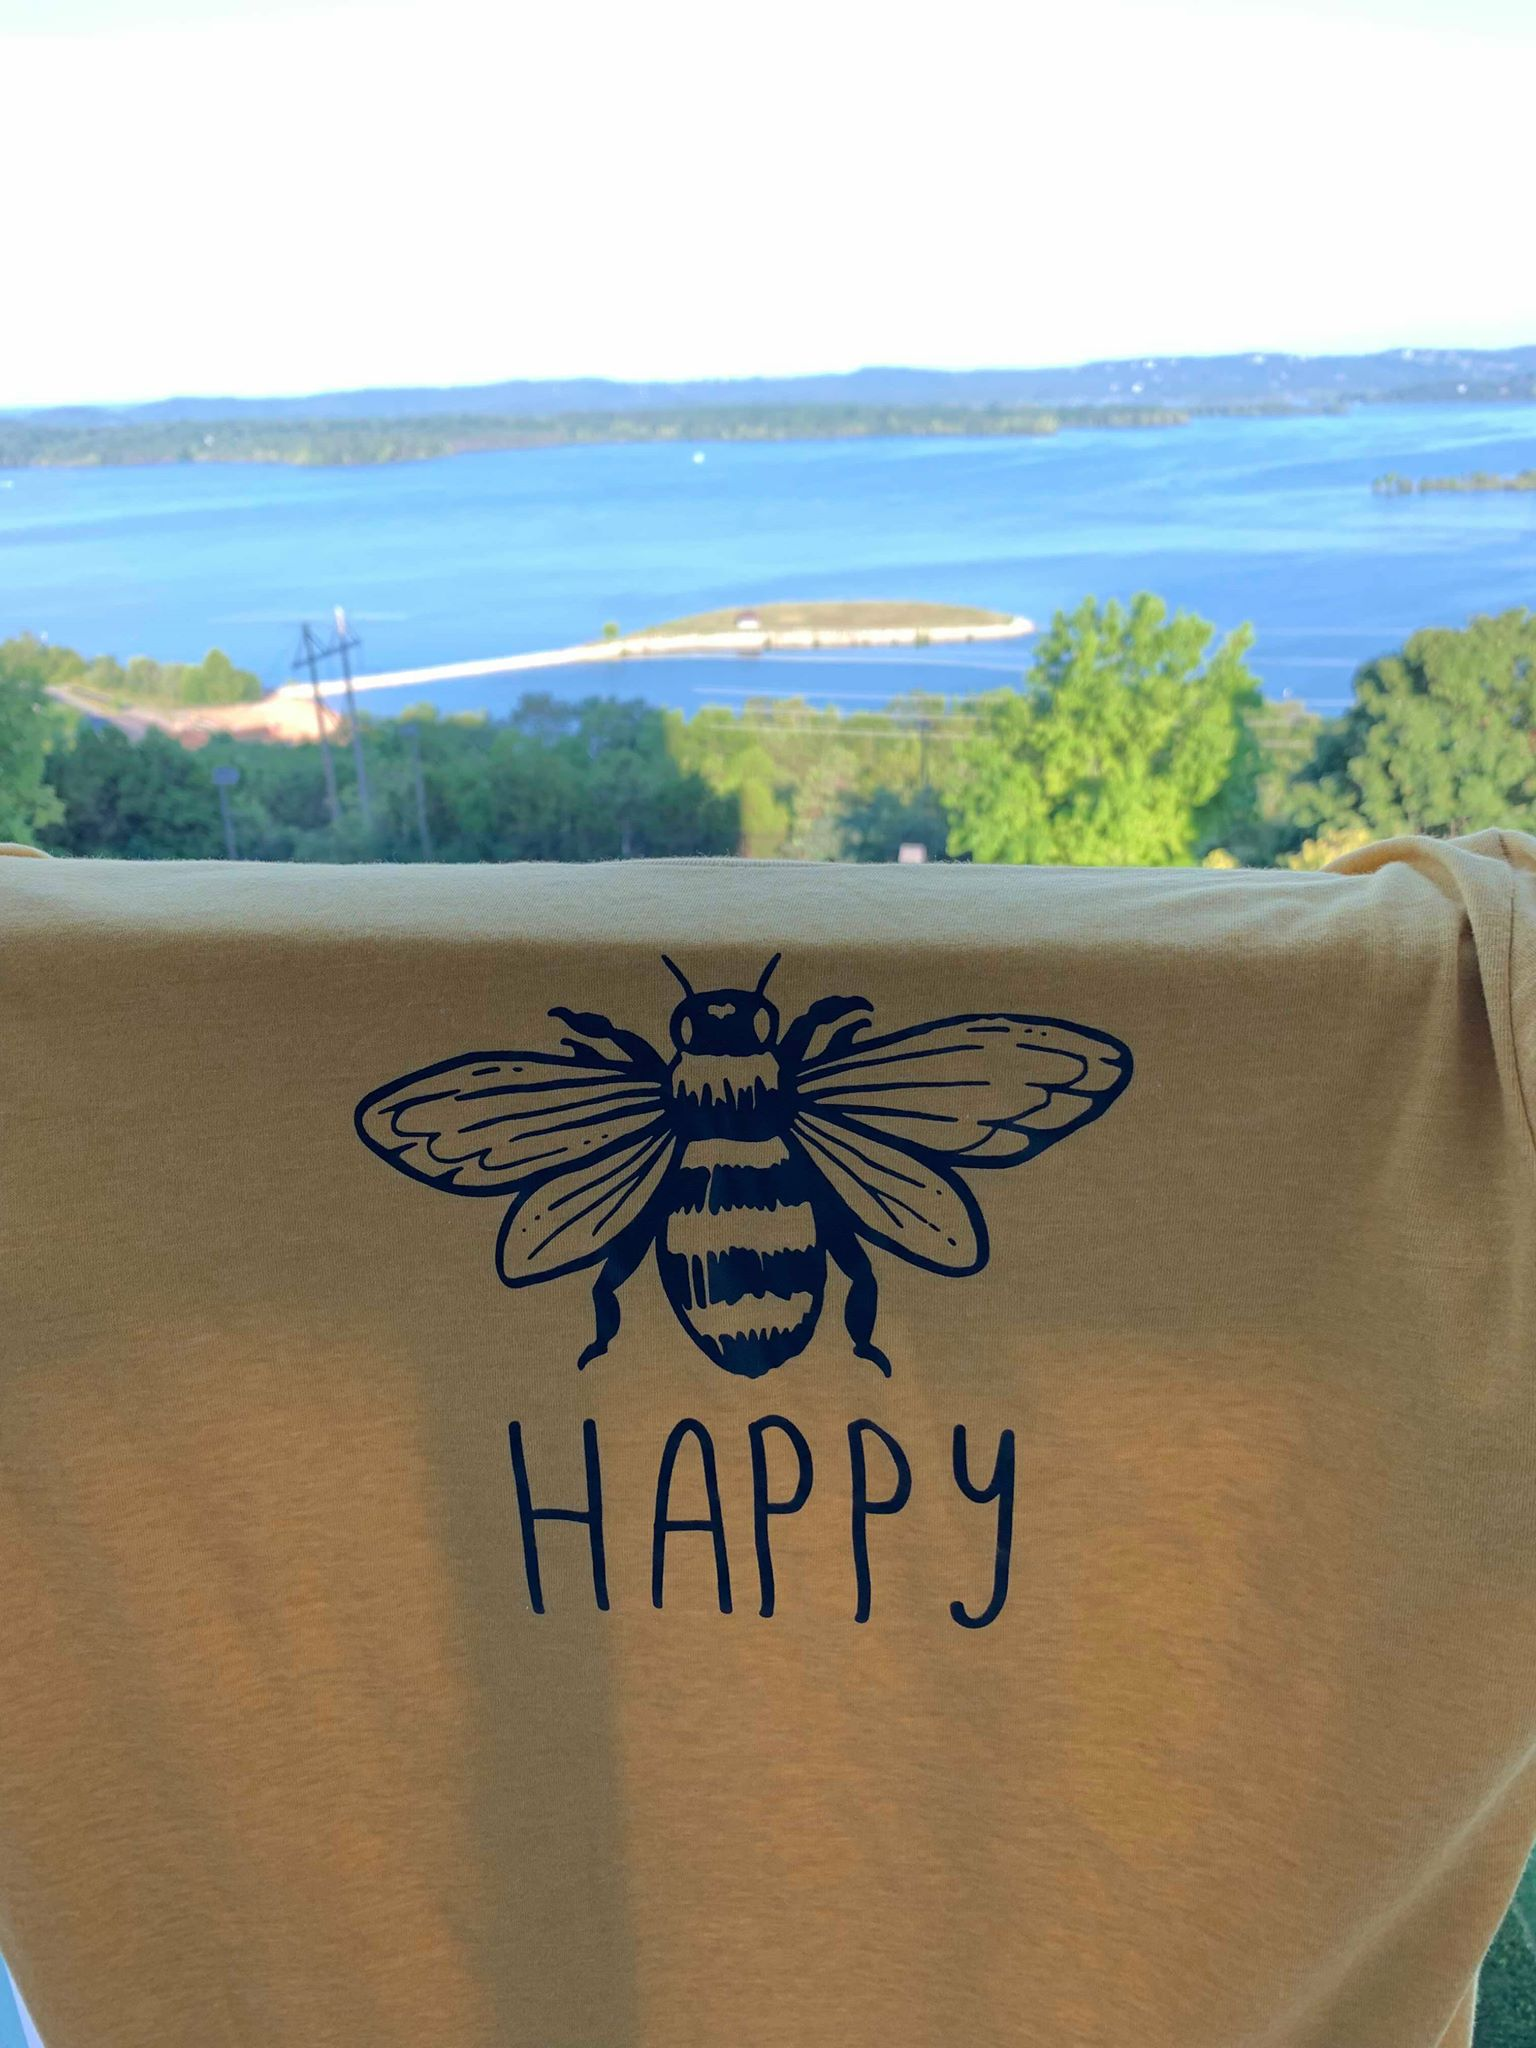 Pick a place that makes you feel safe and happy! -